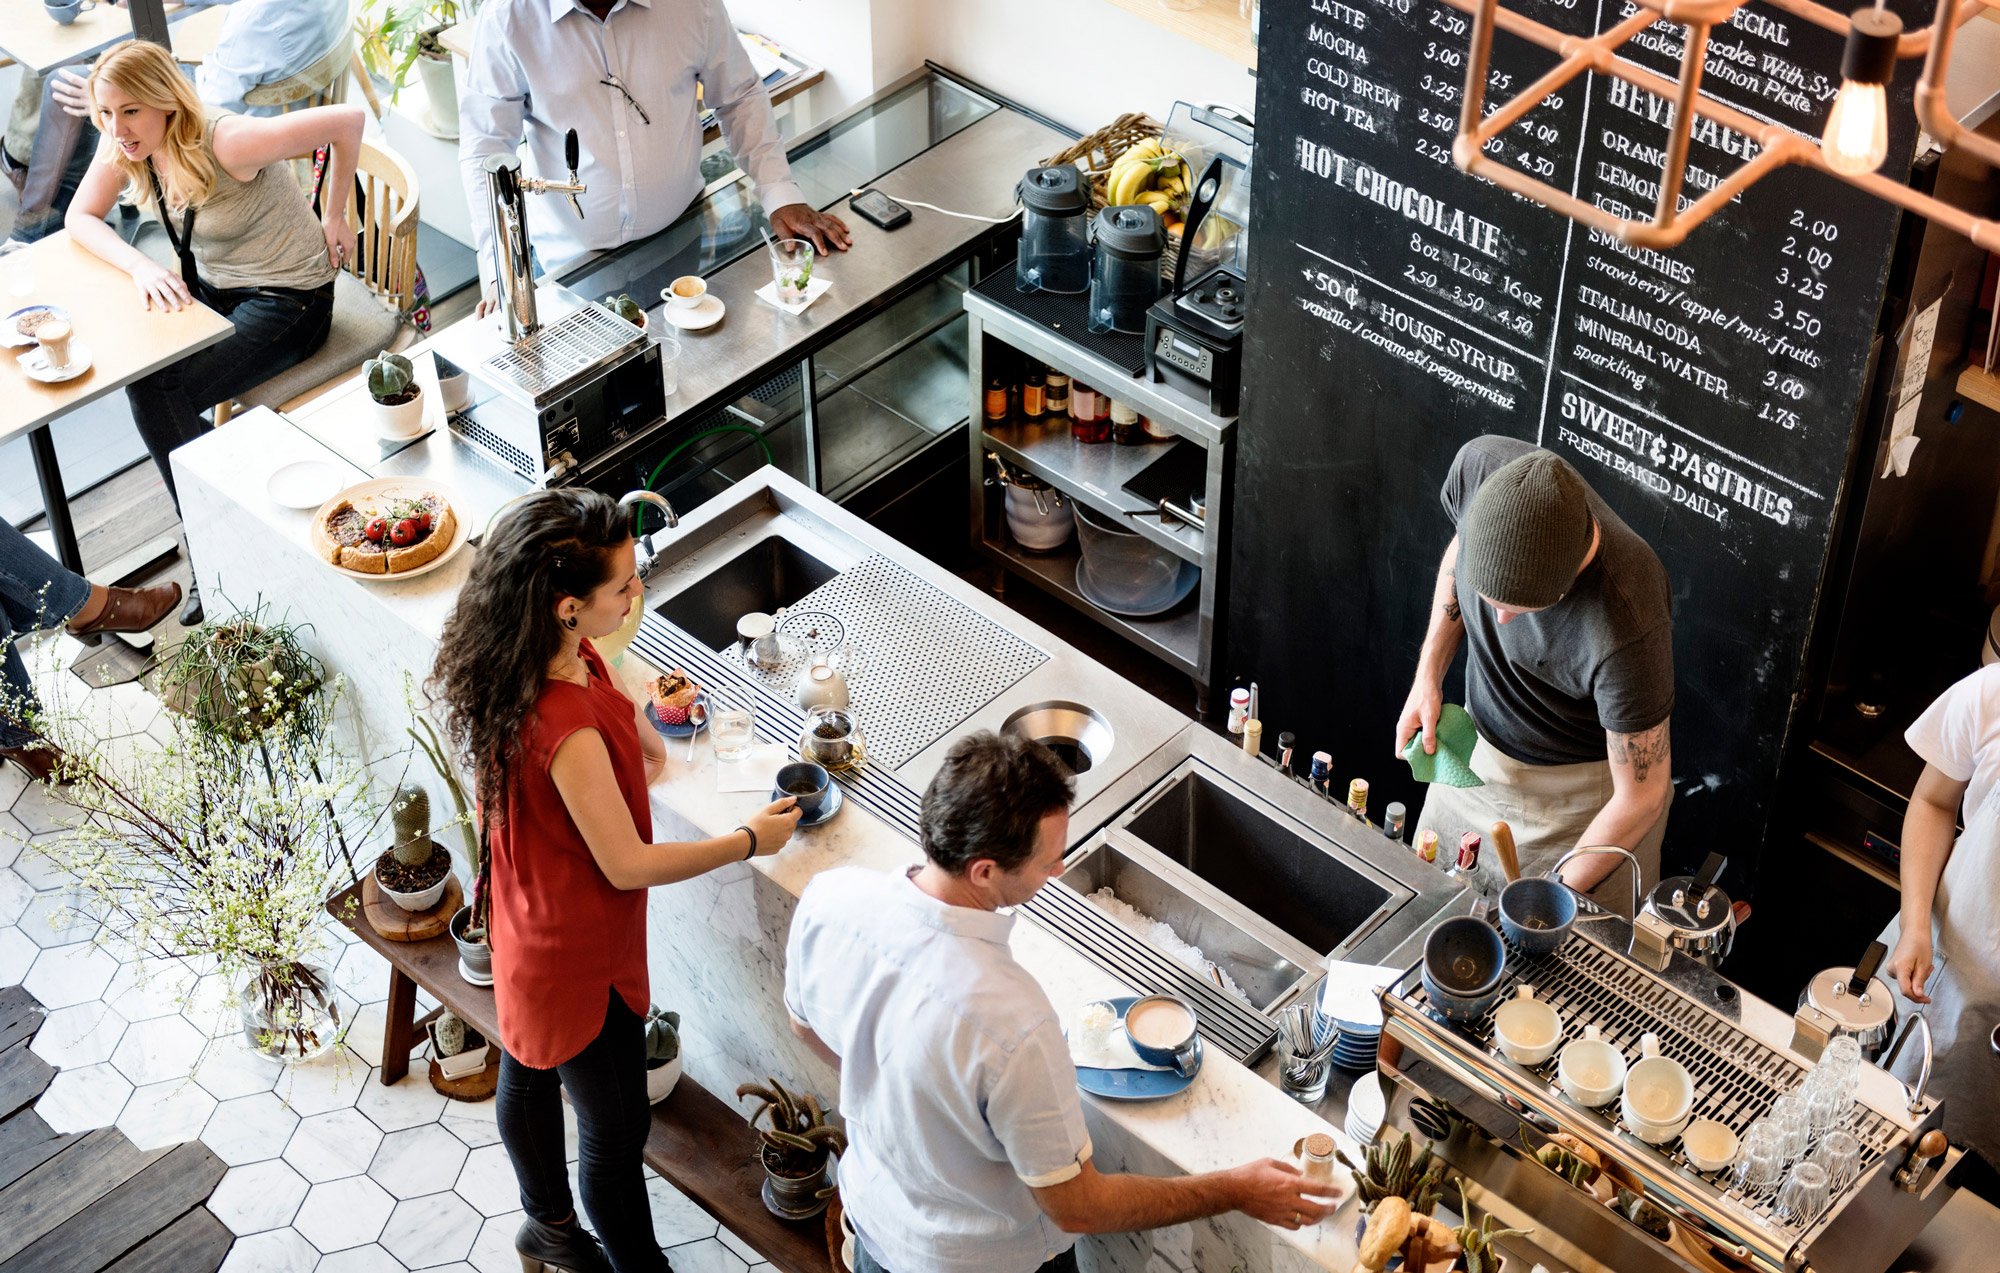 Overhead image of customers ordering drinks at a coffee bar